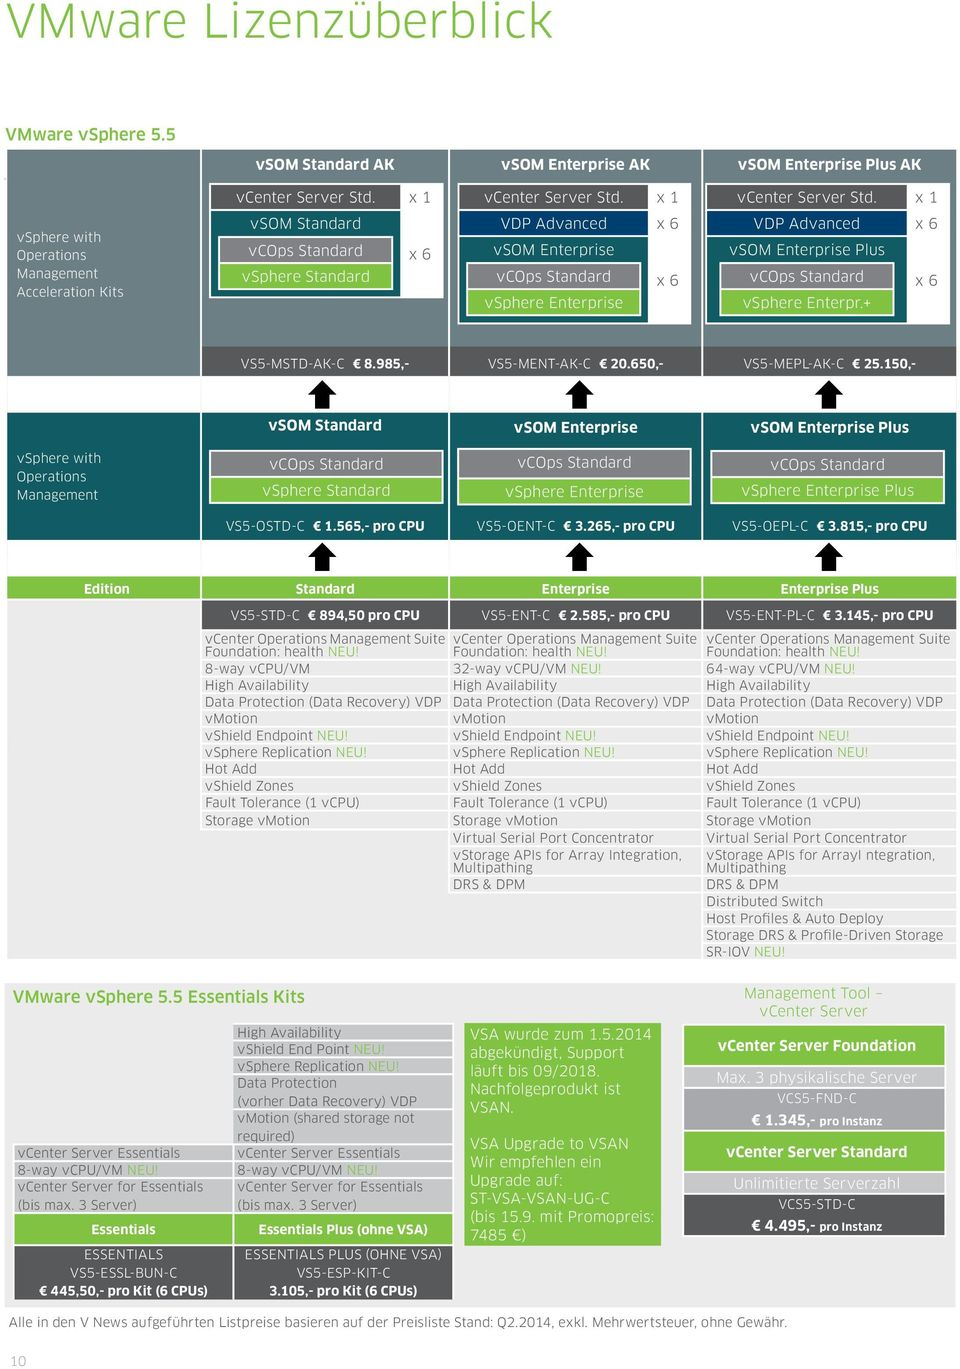 x 1 vsphere with Operations Management Acceleration Kits vsom Standard vcops Standard vsphere Standard x 6 VDP Advanced x 6 vsom Enterprise vcops Standard x 6 vsphere Enterprise VDP Advanced x 6 vsom